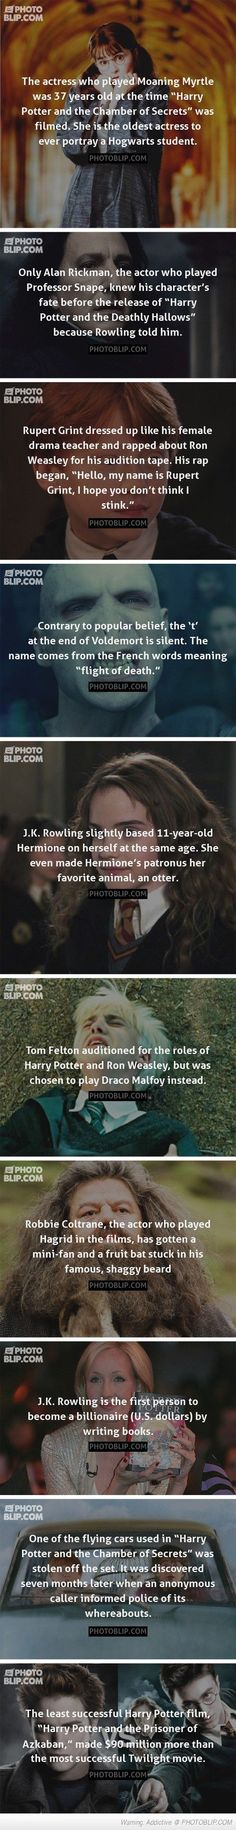 Harry Potter Facts That Will Knock You Off Your Broomstick